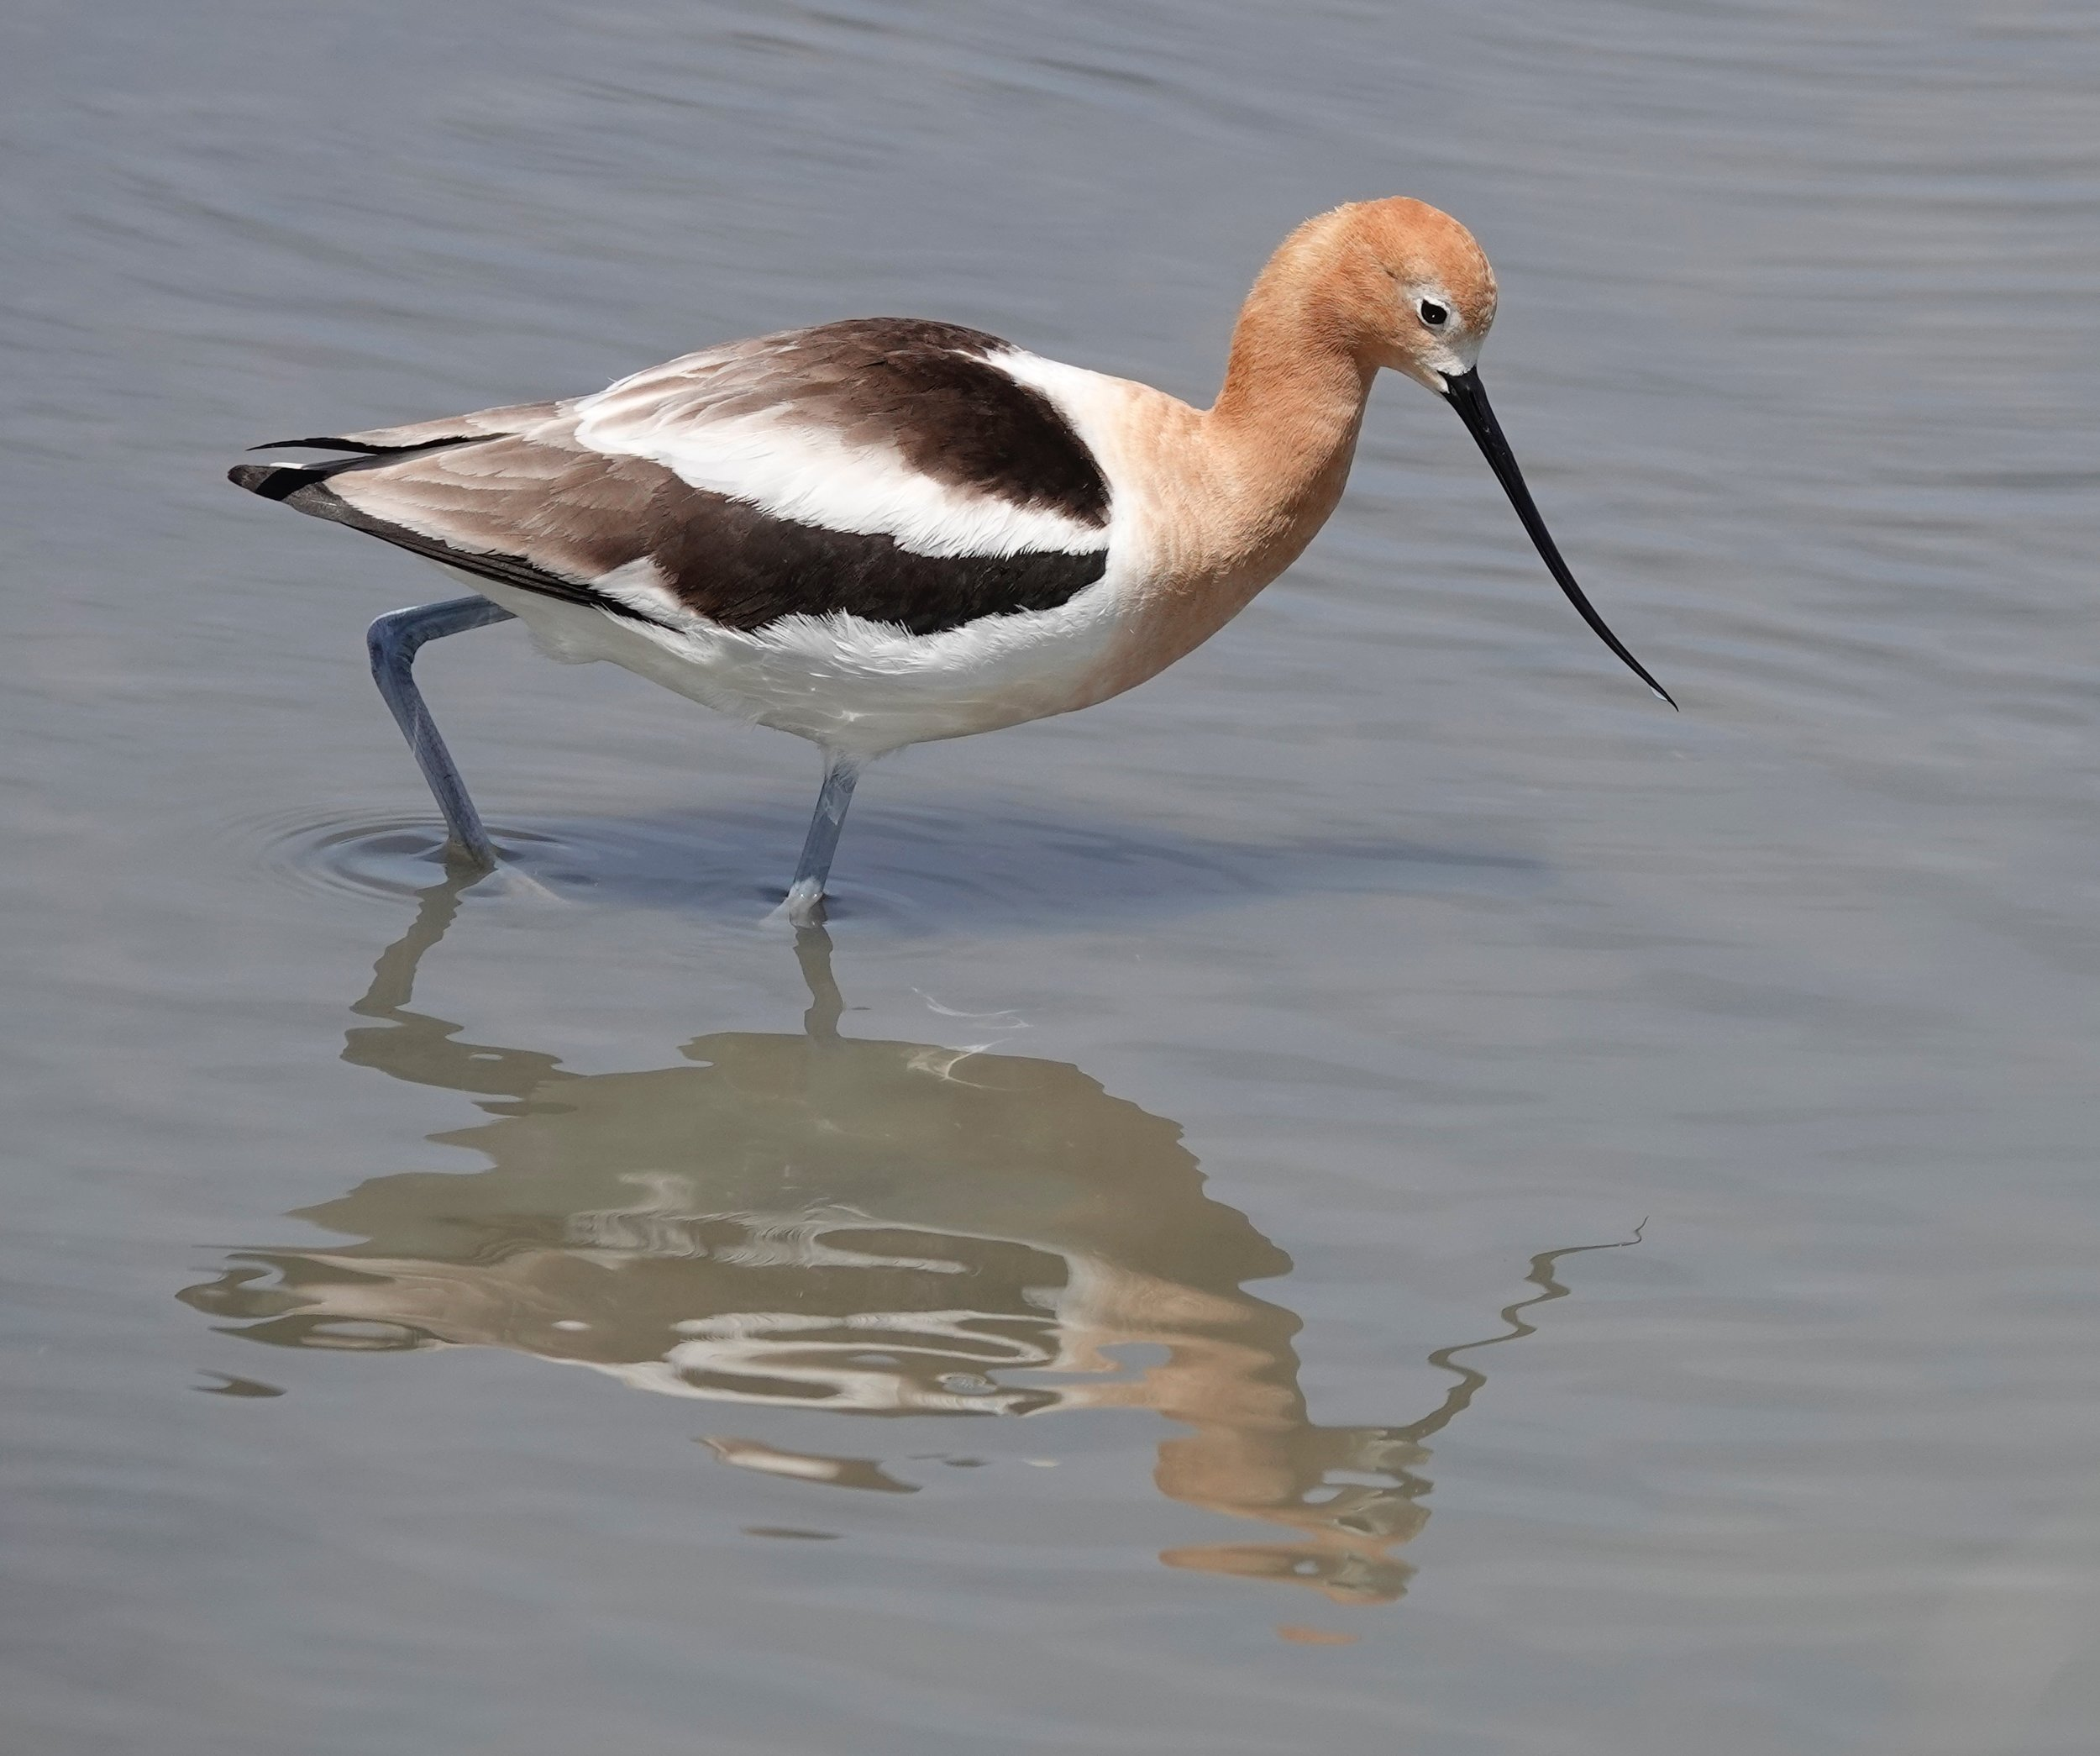 There is something about upward-curving bills like this one of an American Avocet that intrigues me greatly.